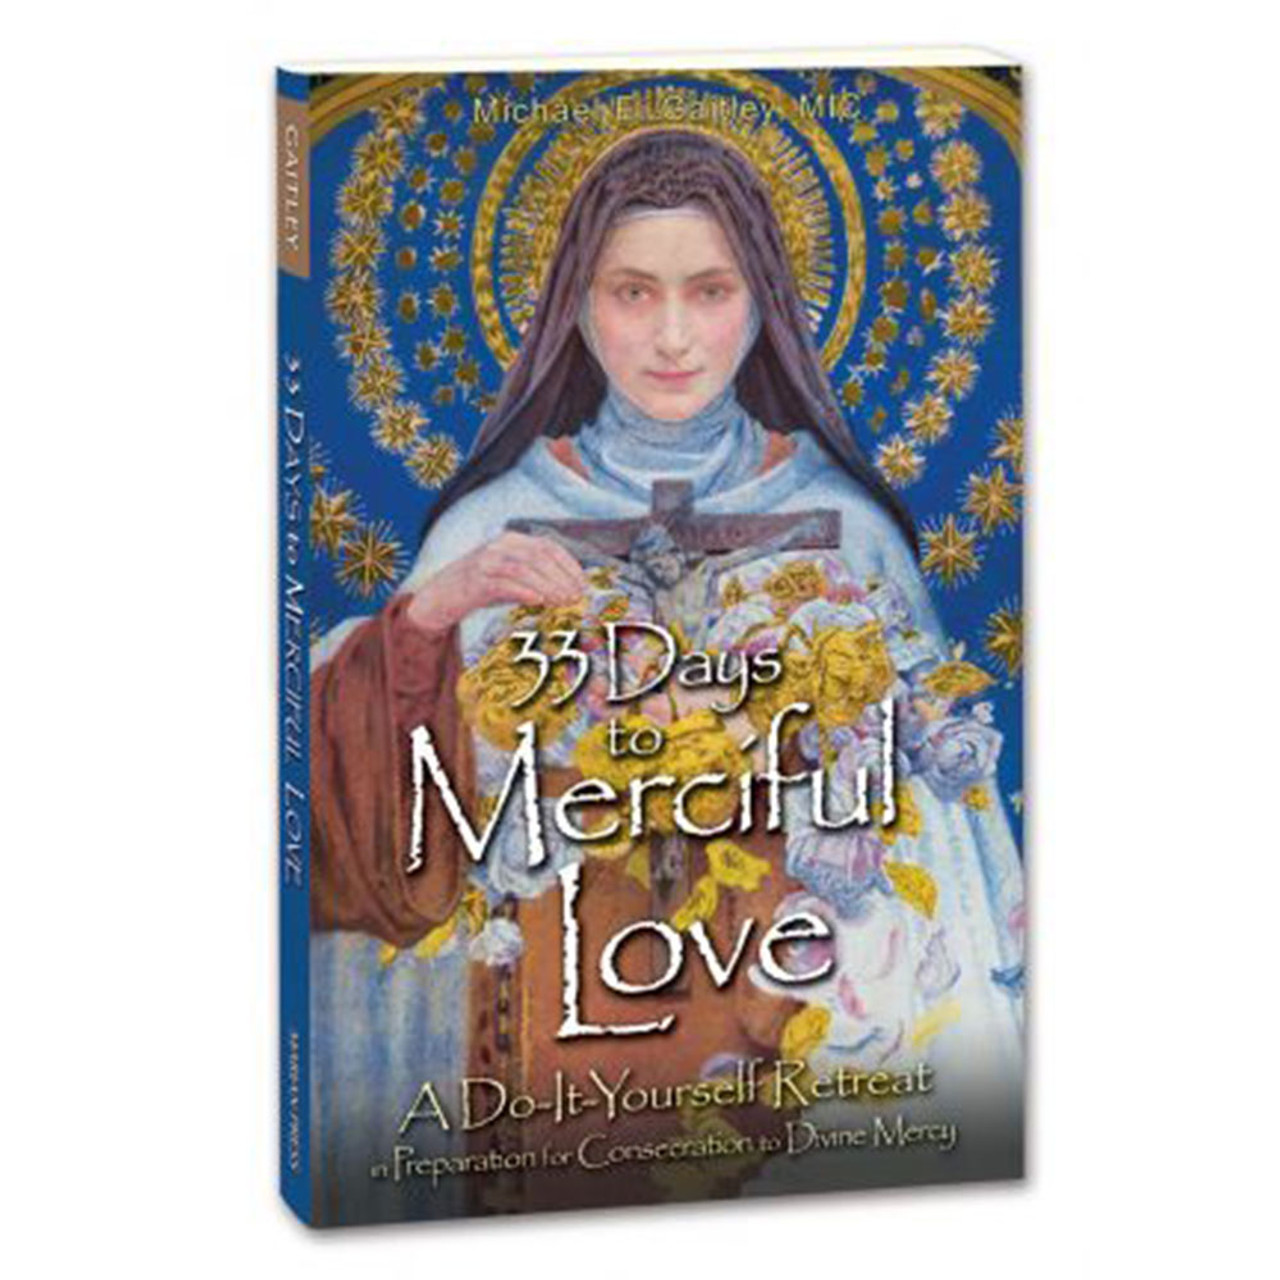 33 Days to Merciful Love Self Retreat